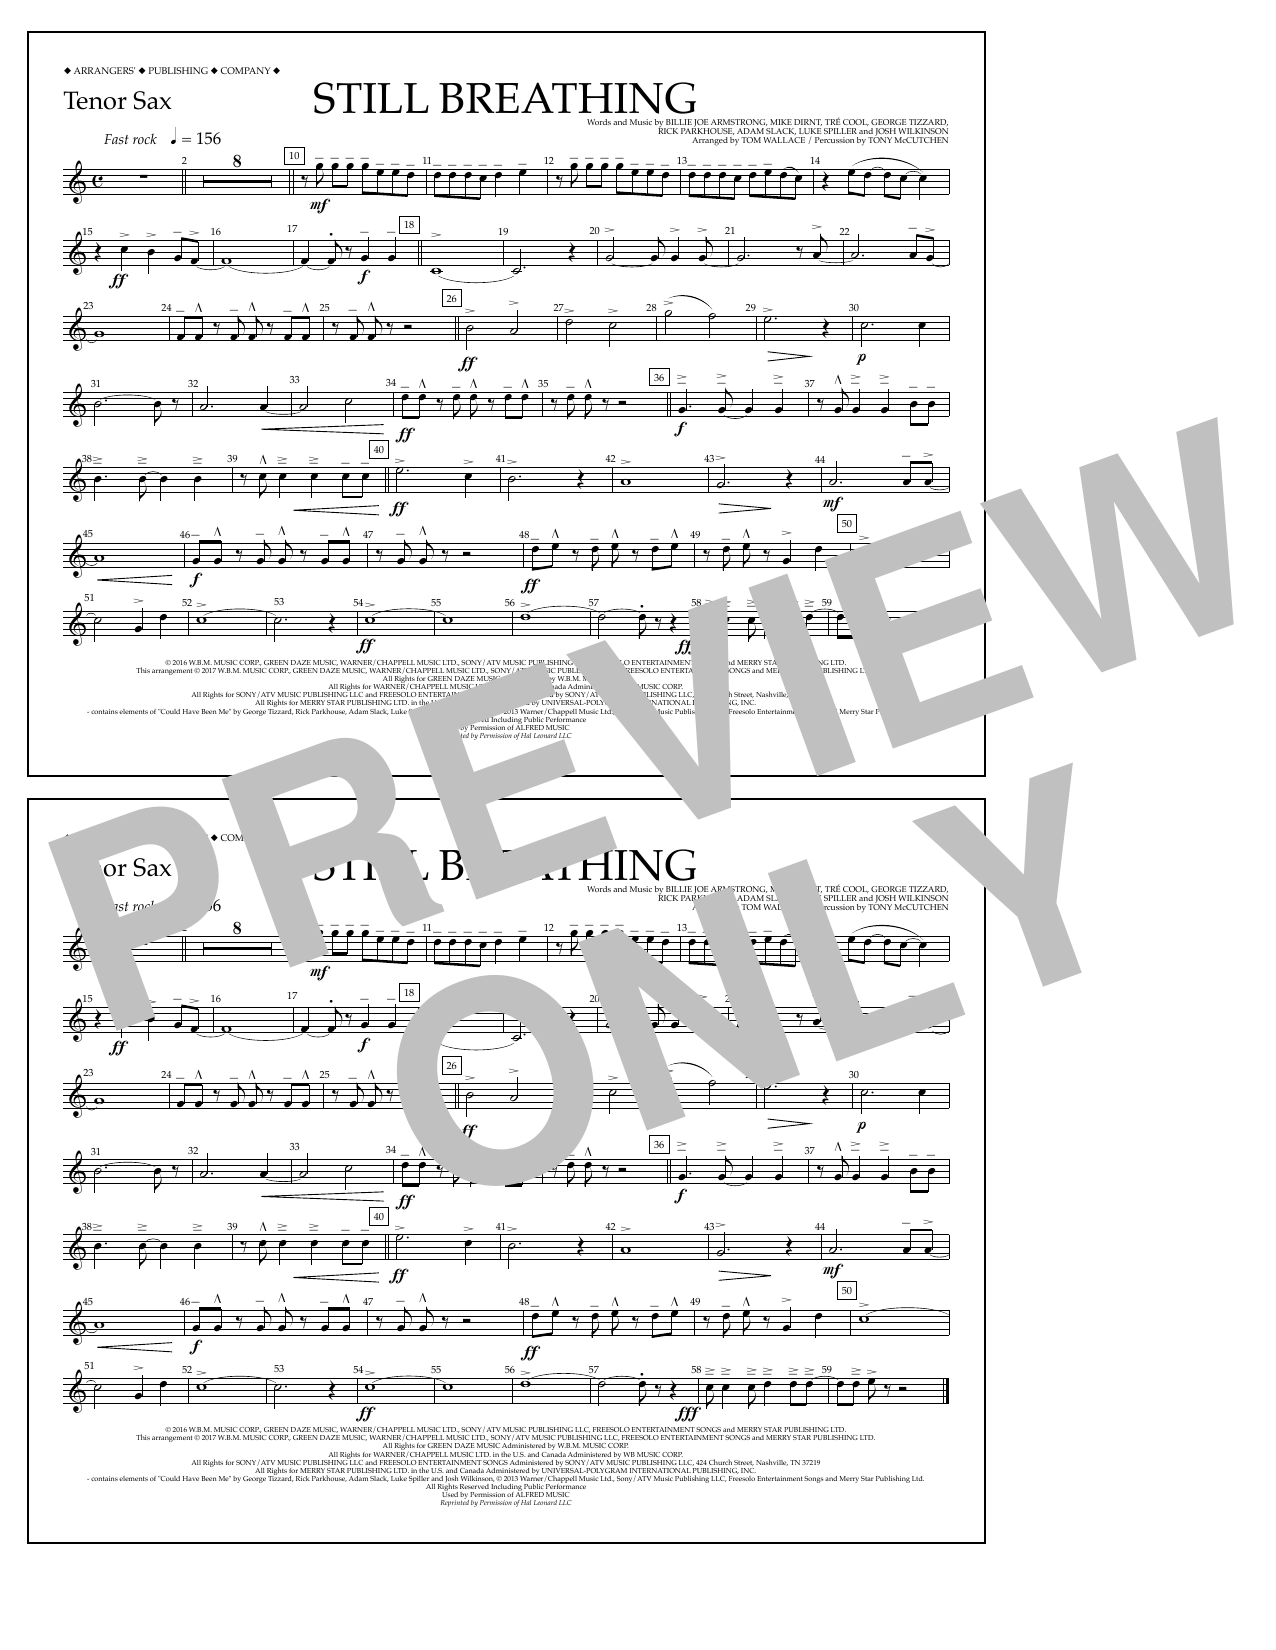 Still Breathing - Tenor Sax Sheet Music